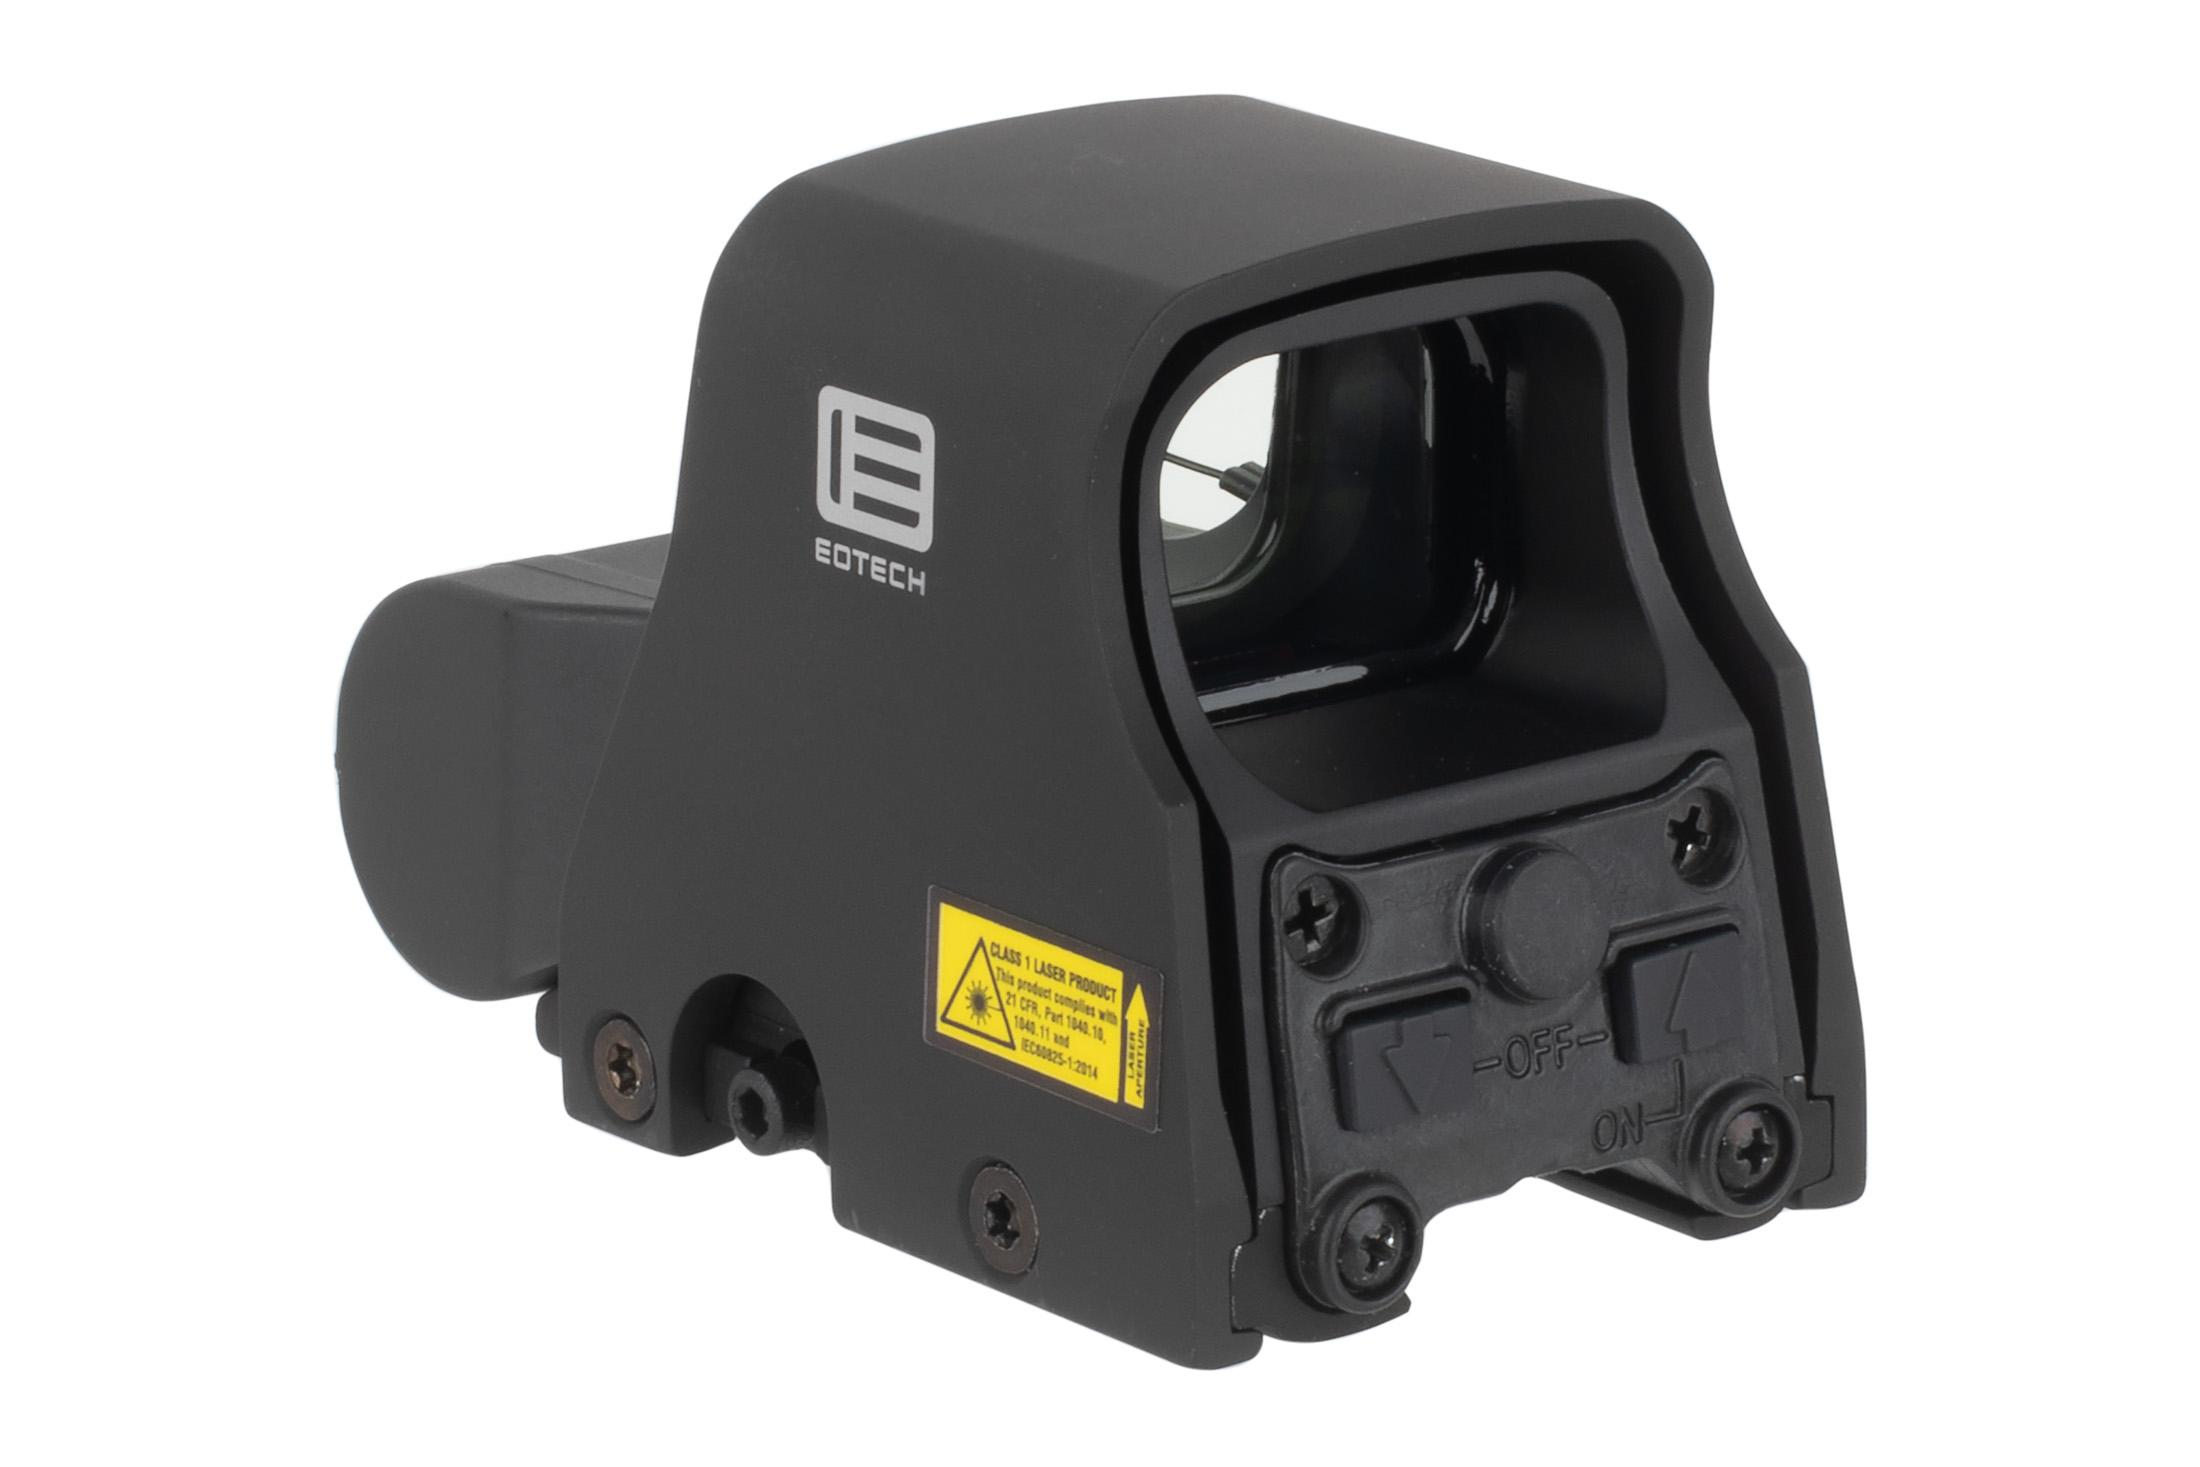 The EOTech XPS2 2 weapon sight features rear facing brightness buttons